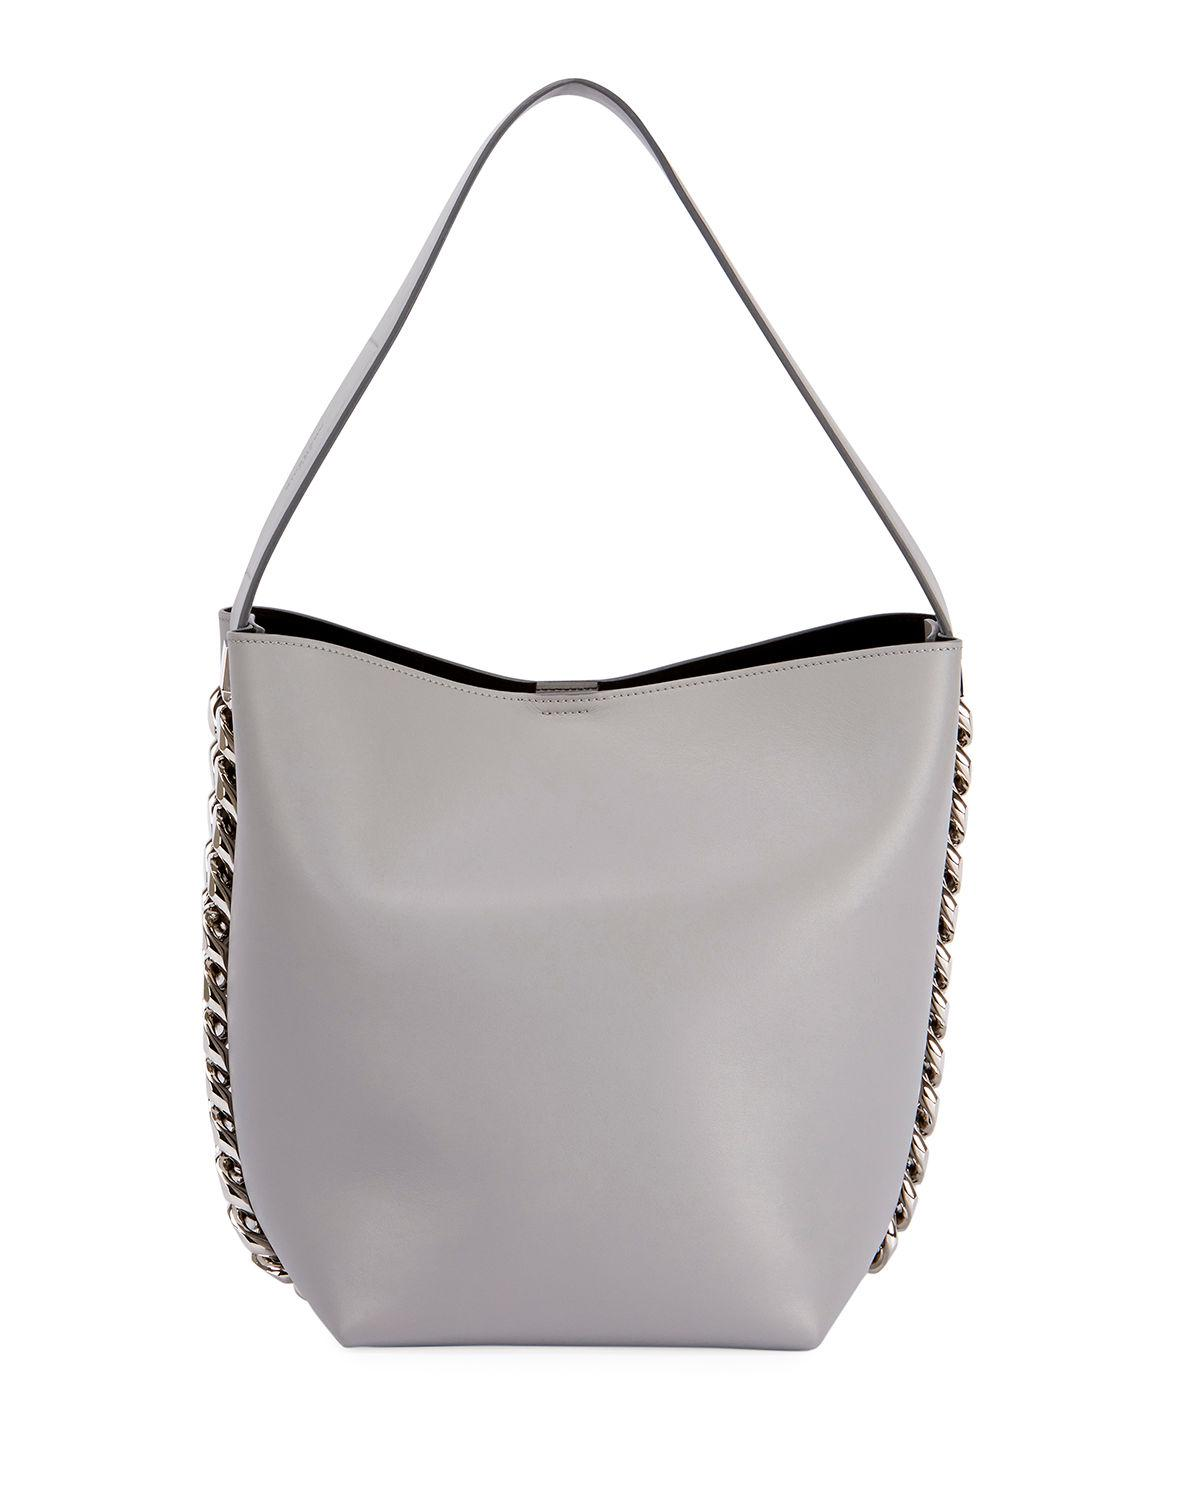 Lyst - Givenchy Infinity Calf Leather Chain Bucket Bag in Gray 3a64b189f9b69